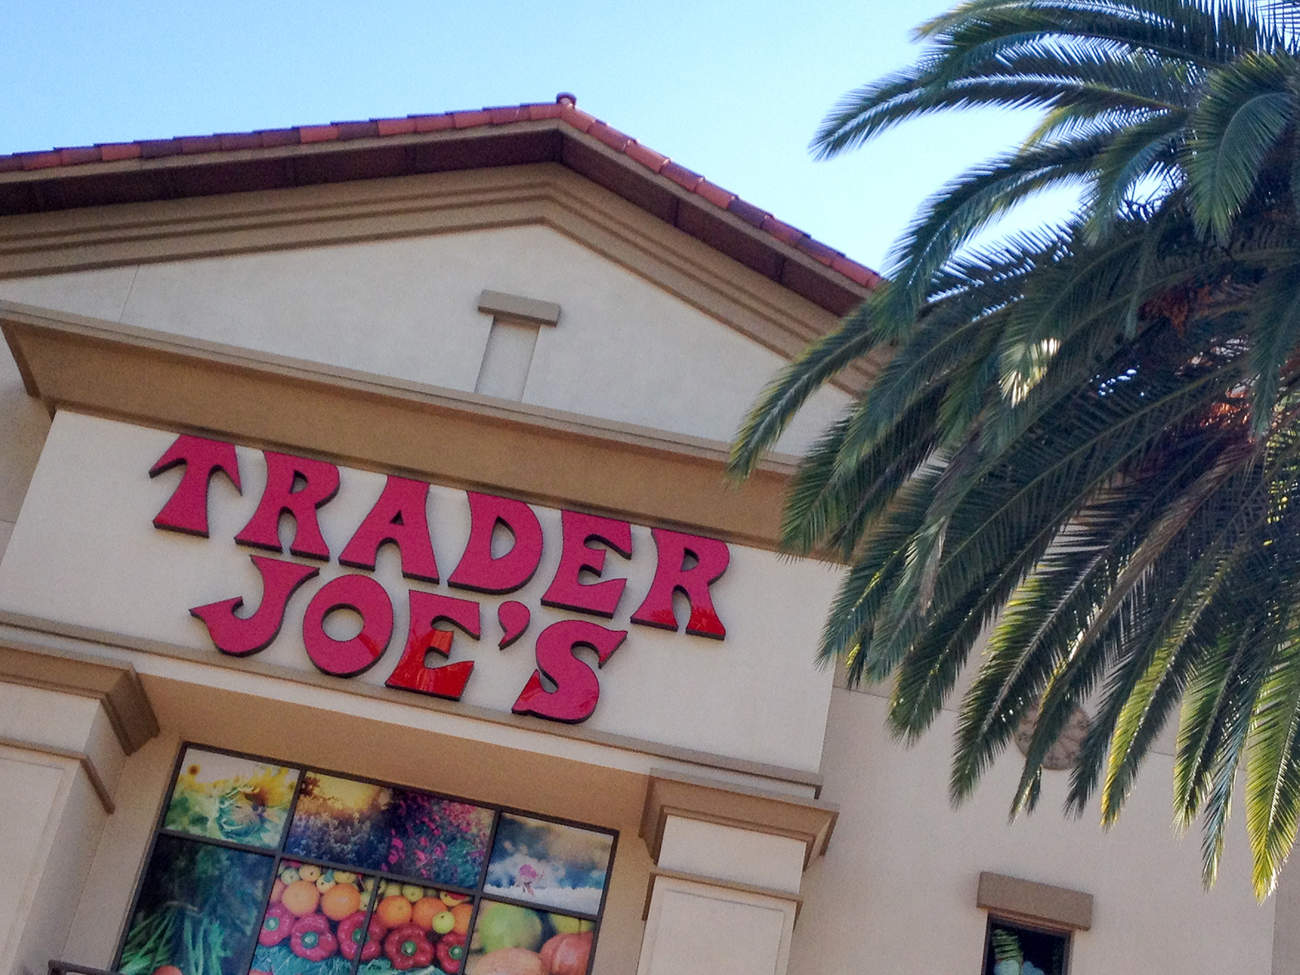 Trader Joe's Recalls Packaged Salads Over Concern They May Contain Glass or Plastic Fragments